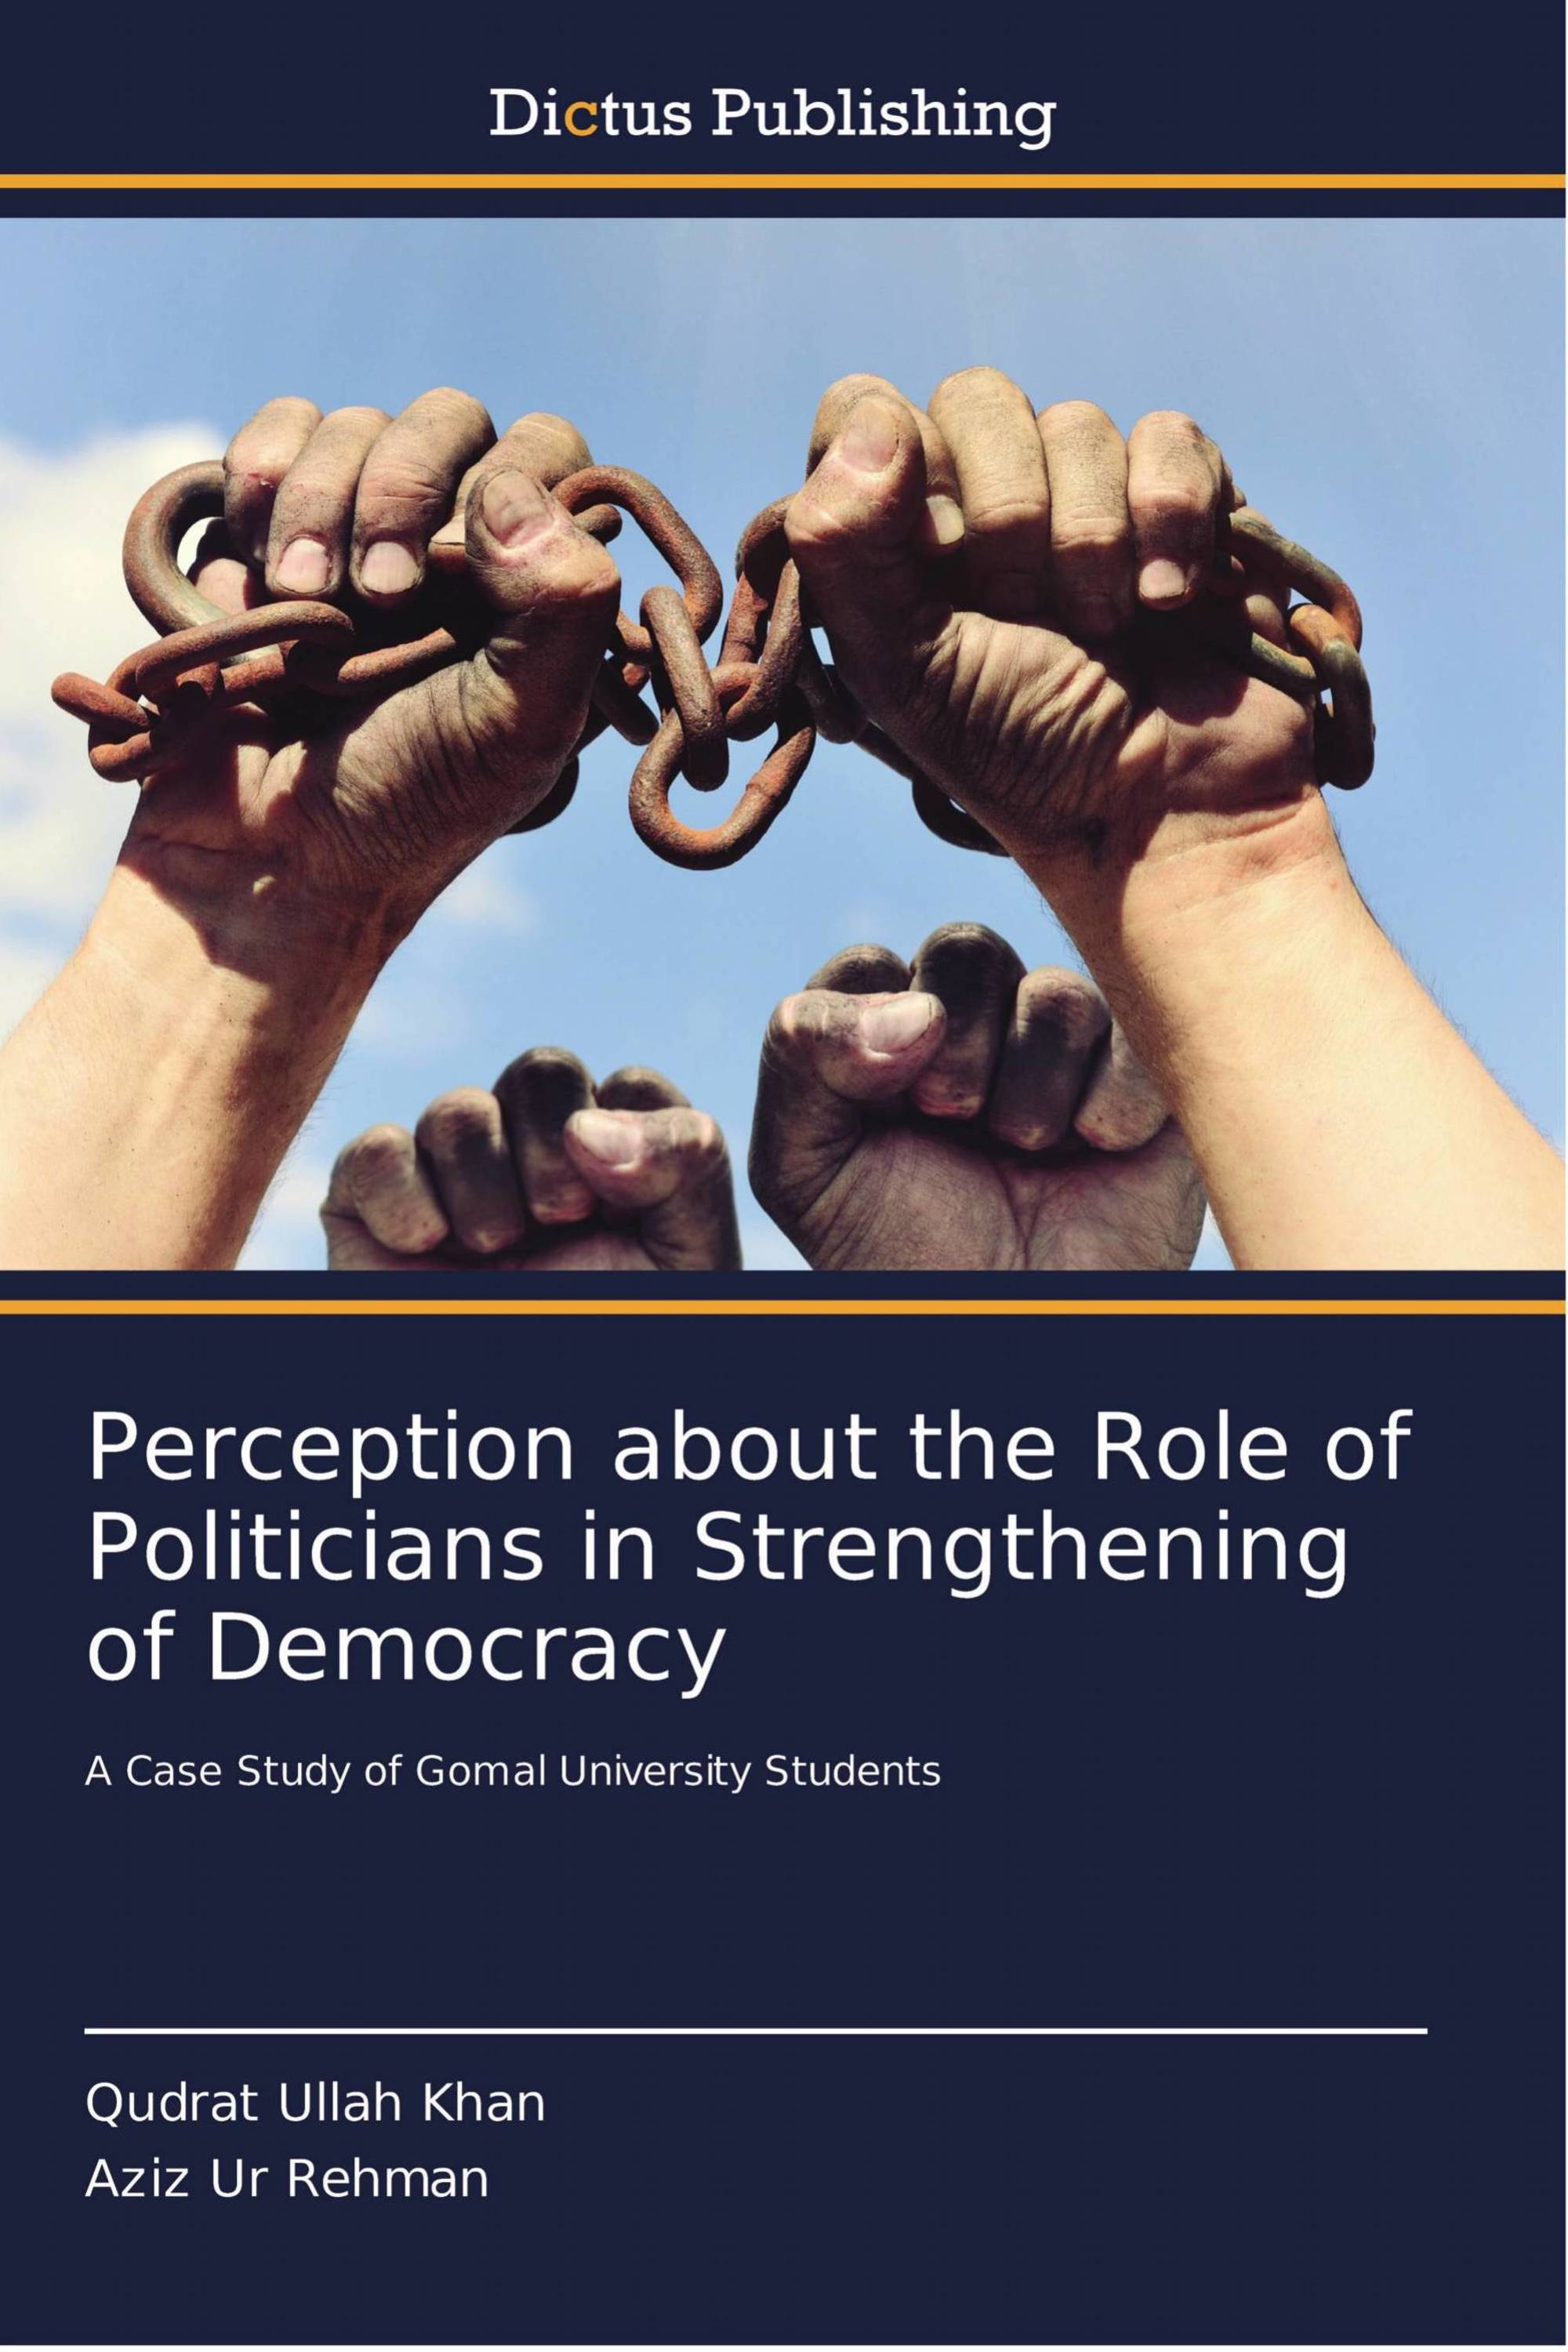 Perception about the Role of Politicians in Strengthening of Democracy